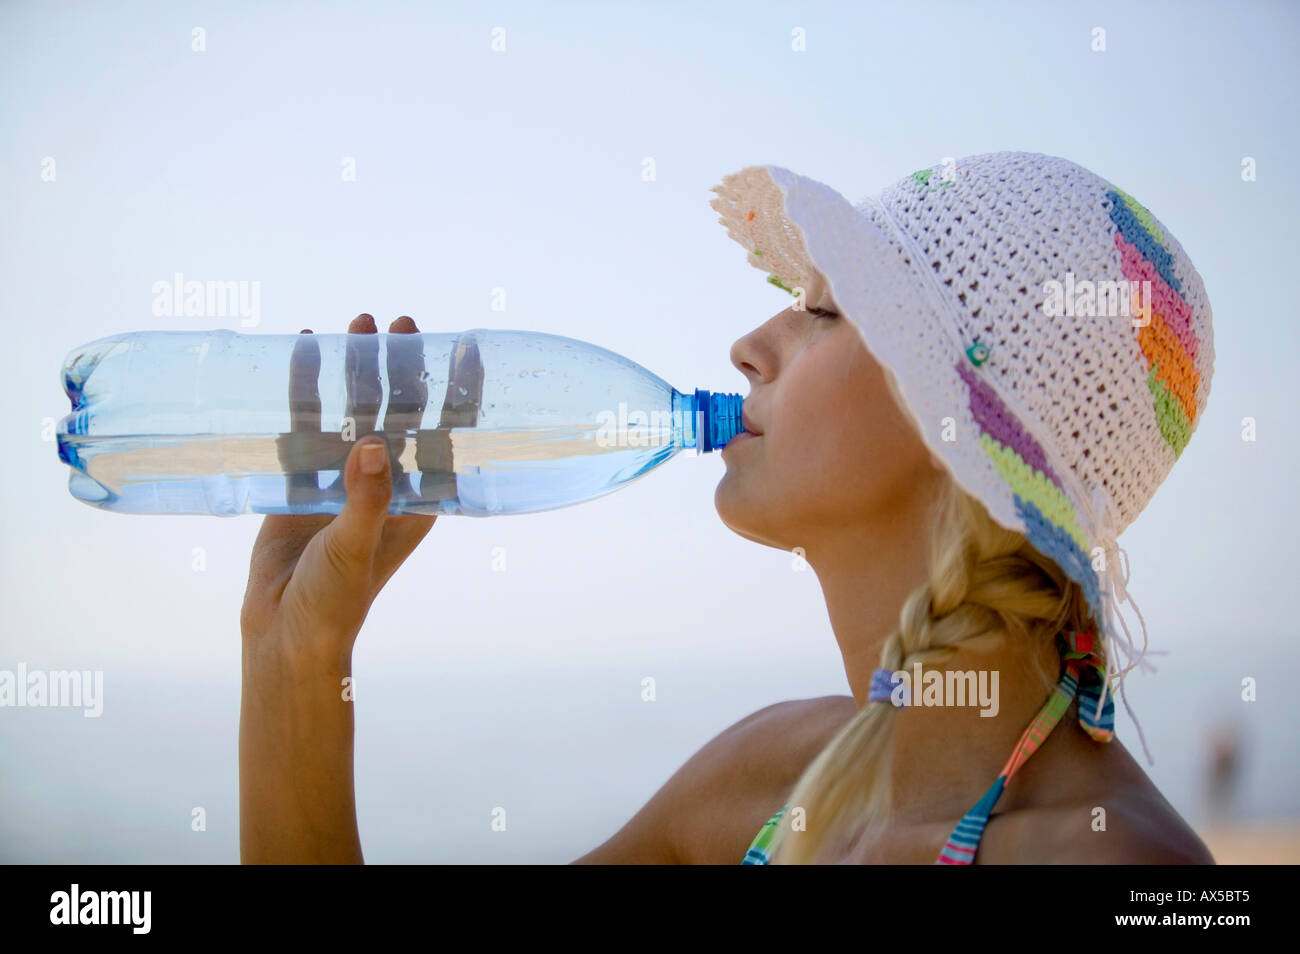 Young woman drinking from water bottle, side view - Stock Image